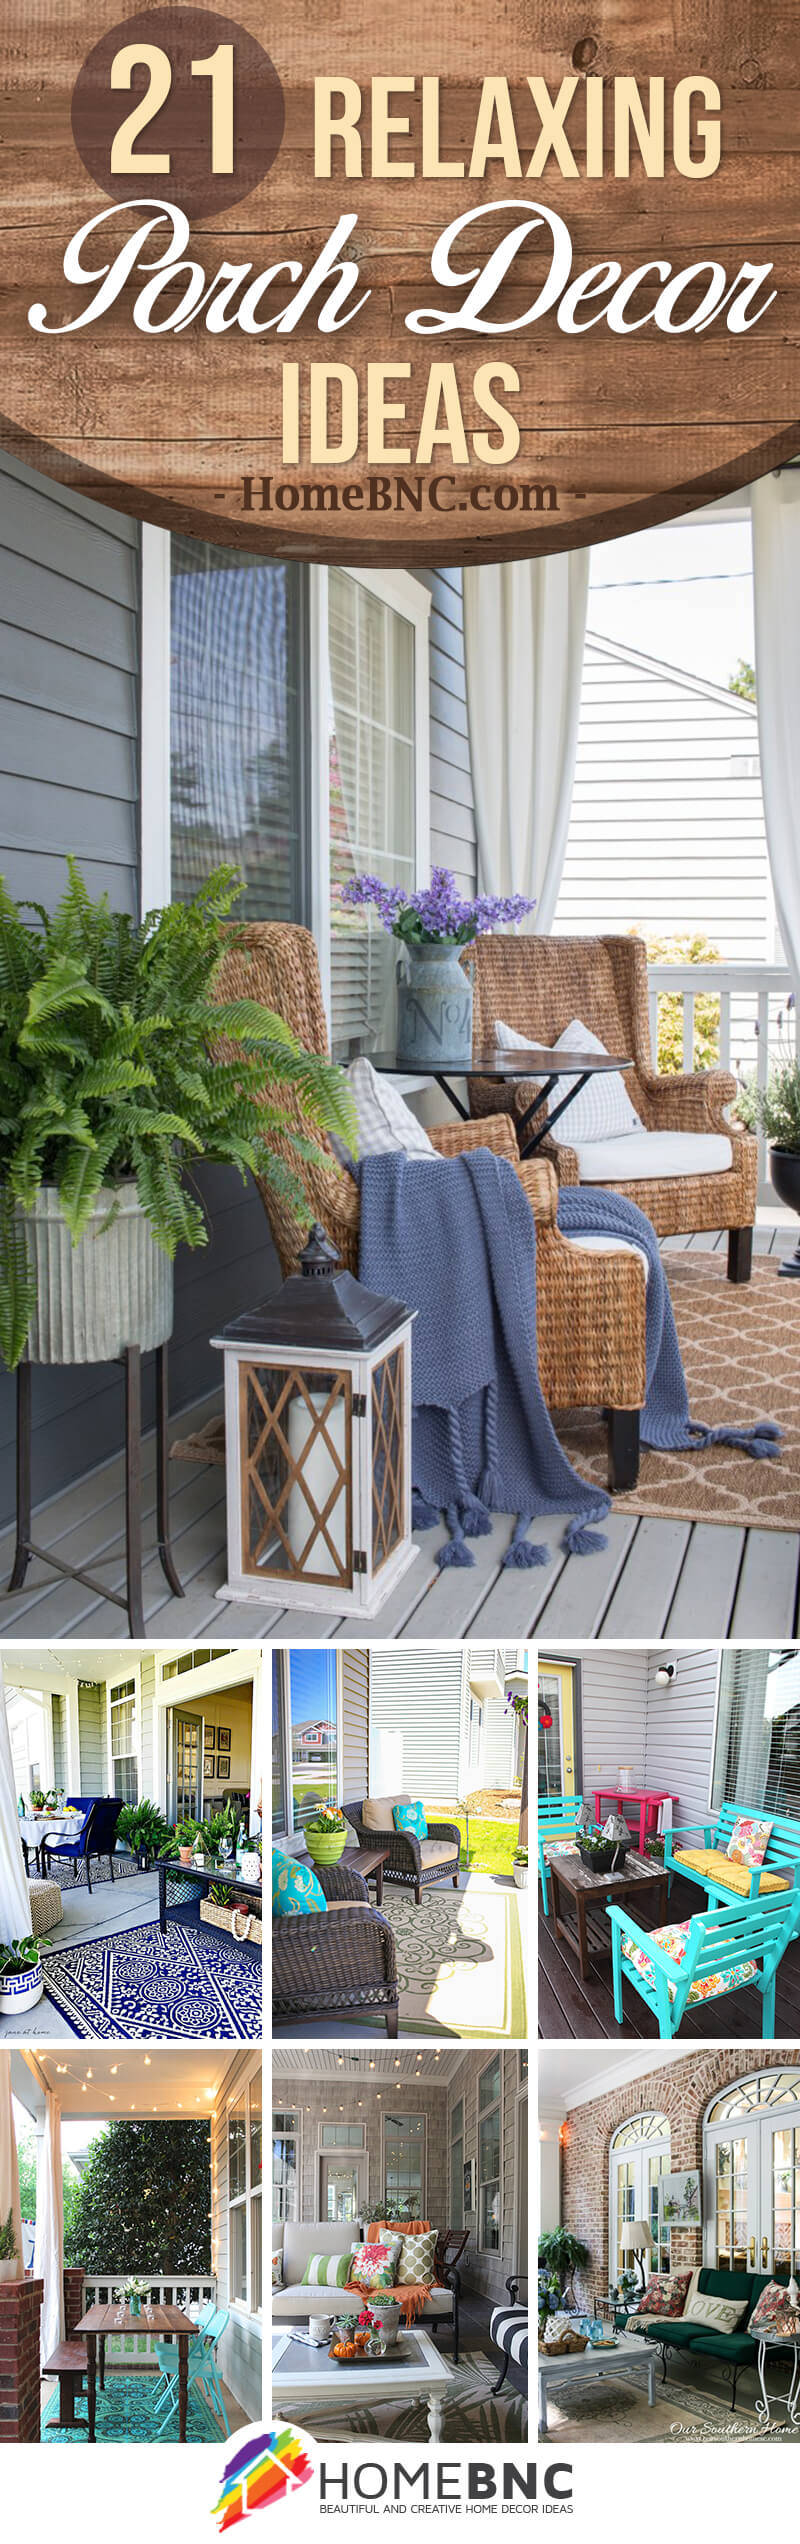 Relaxing Porch Decor Ideas